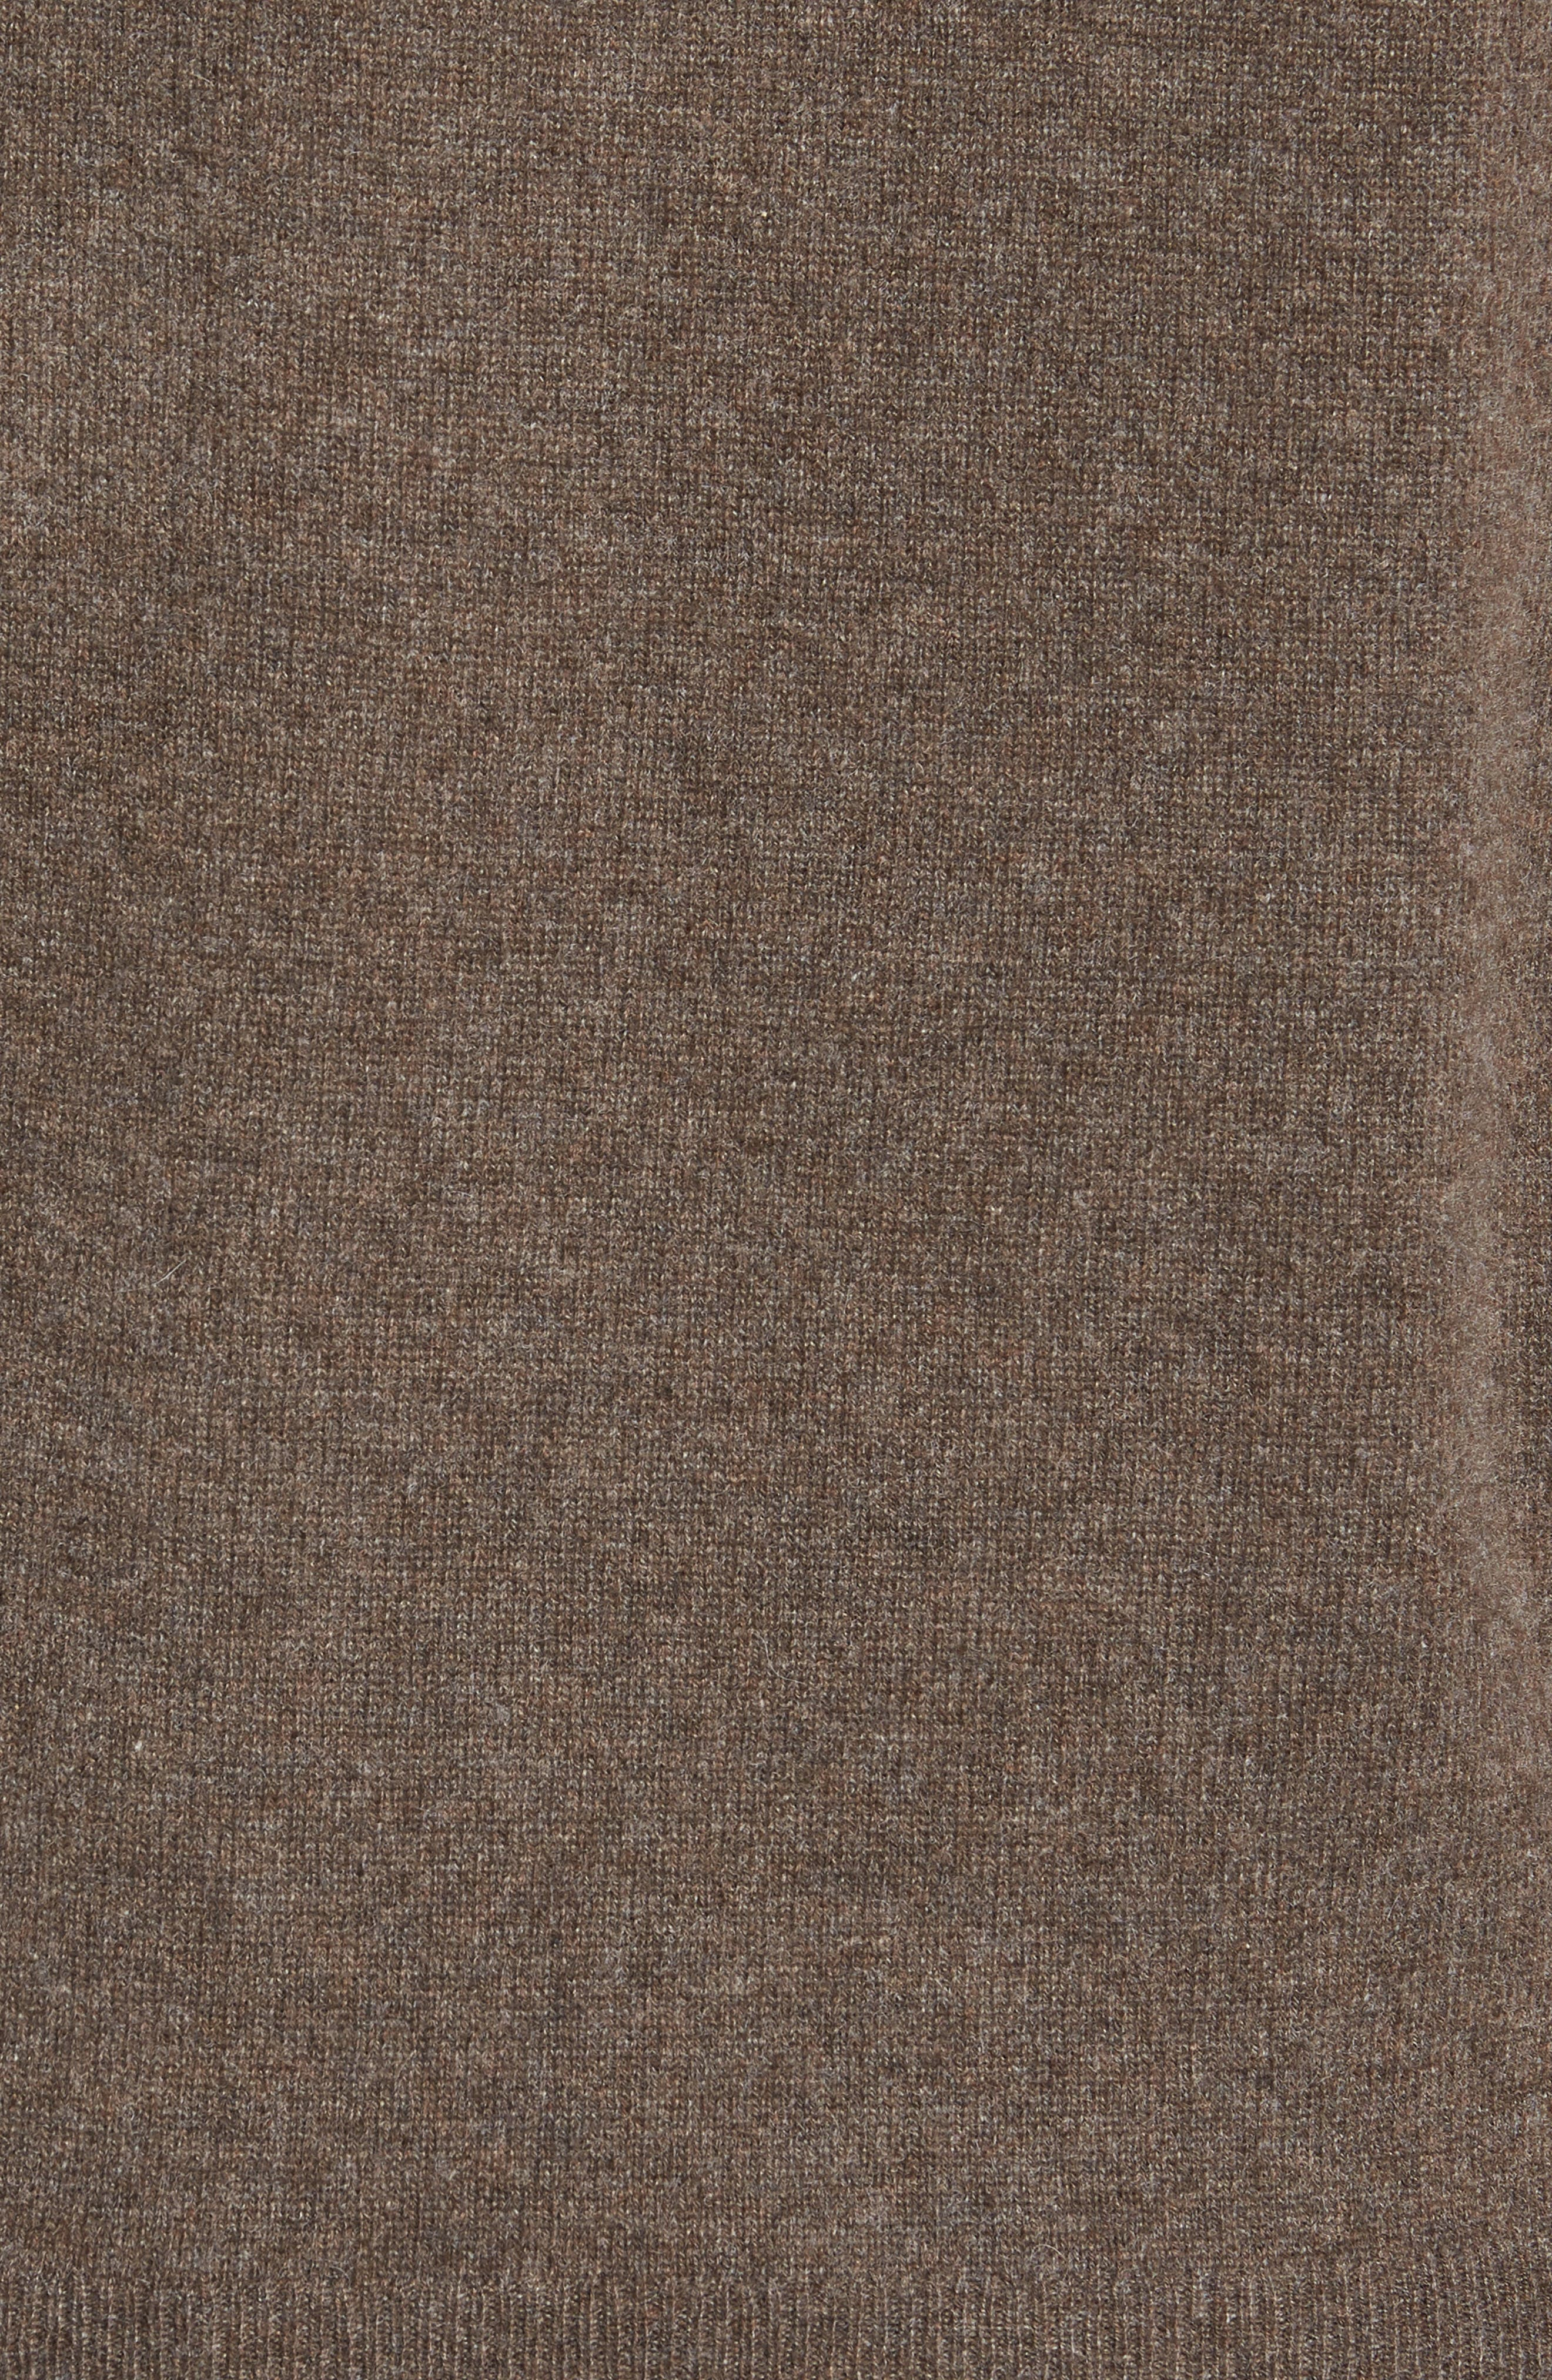 Cashmere V-Neck Sweater,                             Alternate thumbnail 5, color,                             BROWN FAWN